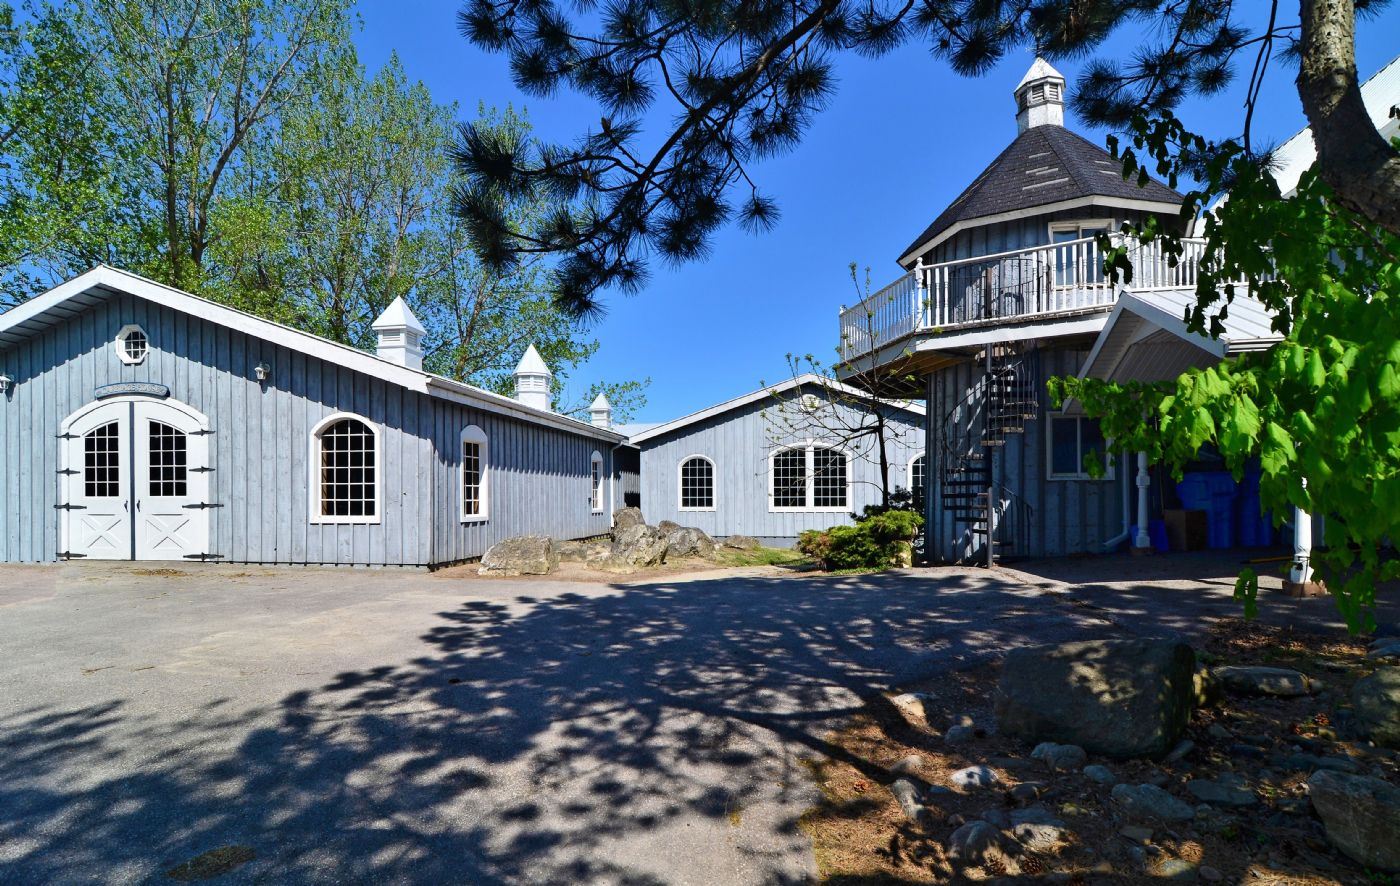 Tralee caledon caledon country homes luxury real estate for Luxury country homes